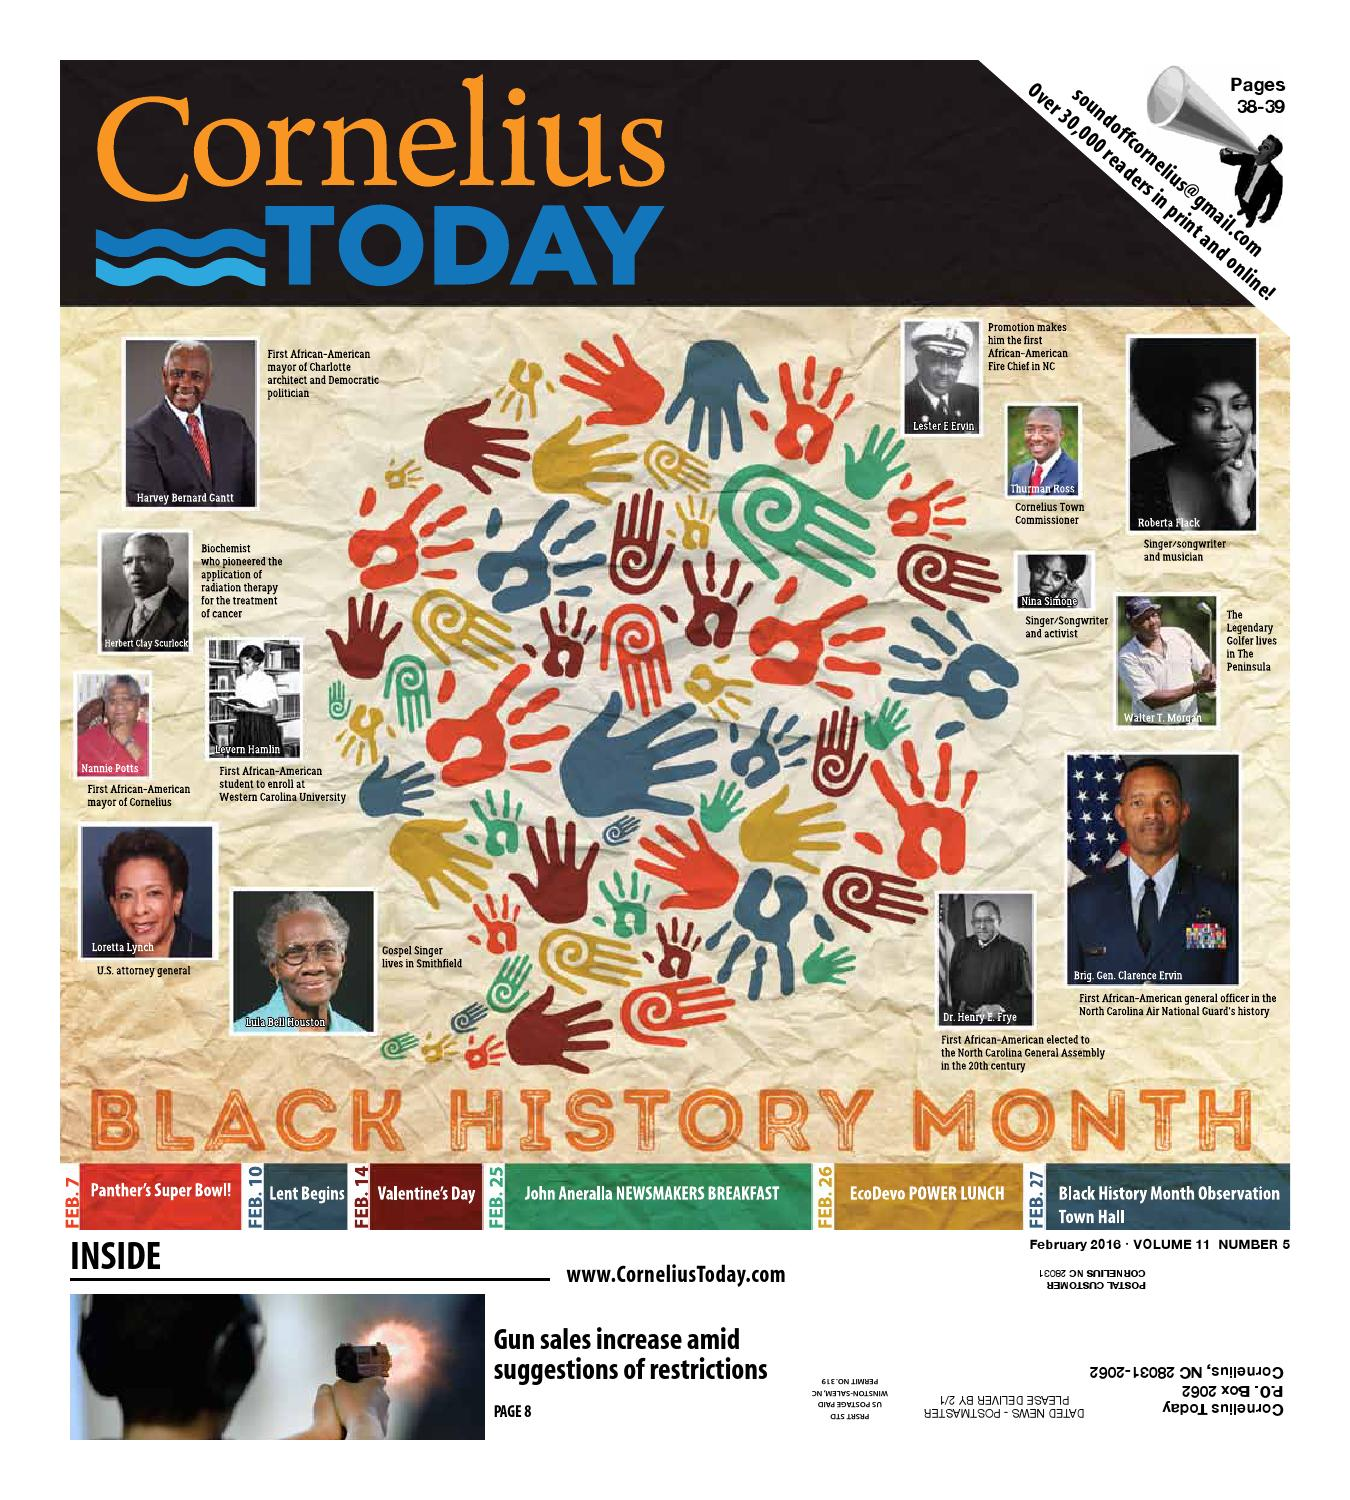 Cornelius Today February 2016 by Business Today Cornelius Today